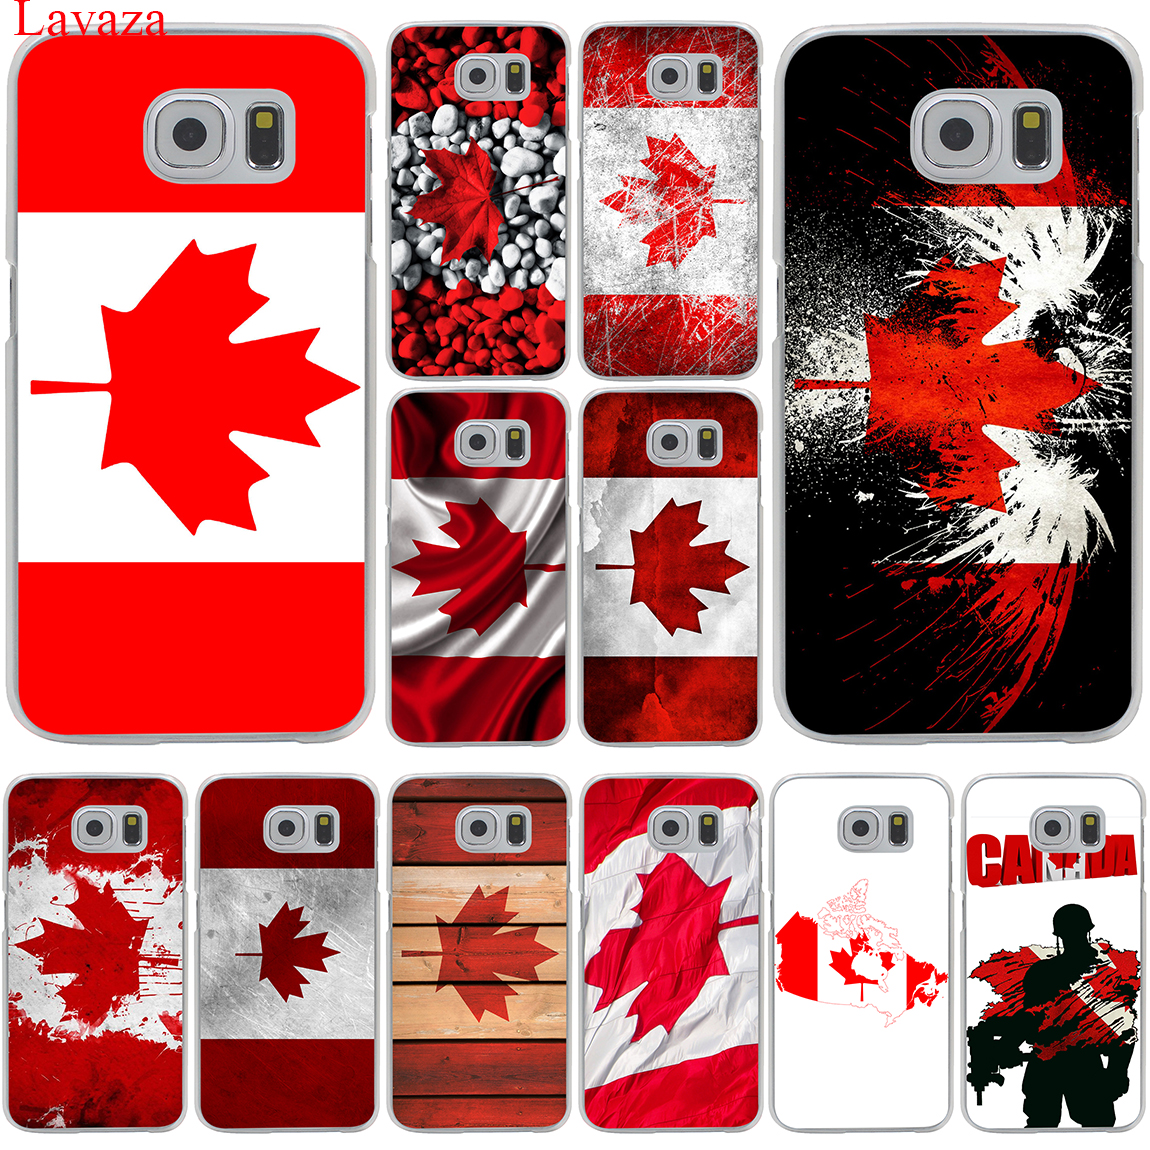 Canada flag toronto maple leafs Hard Transparent for Samsung Galaxy S6 S7 S8 Edge Plus S5 S4 S3 & Mini Case Cover